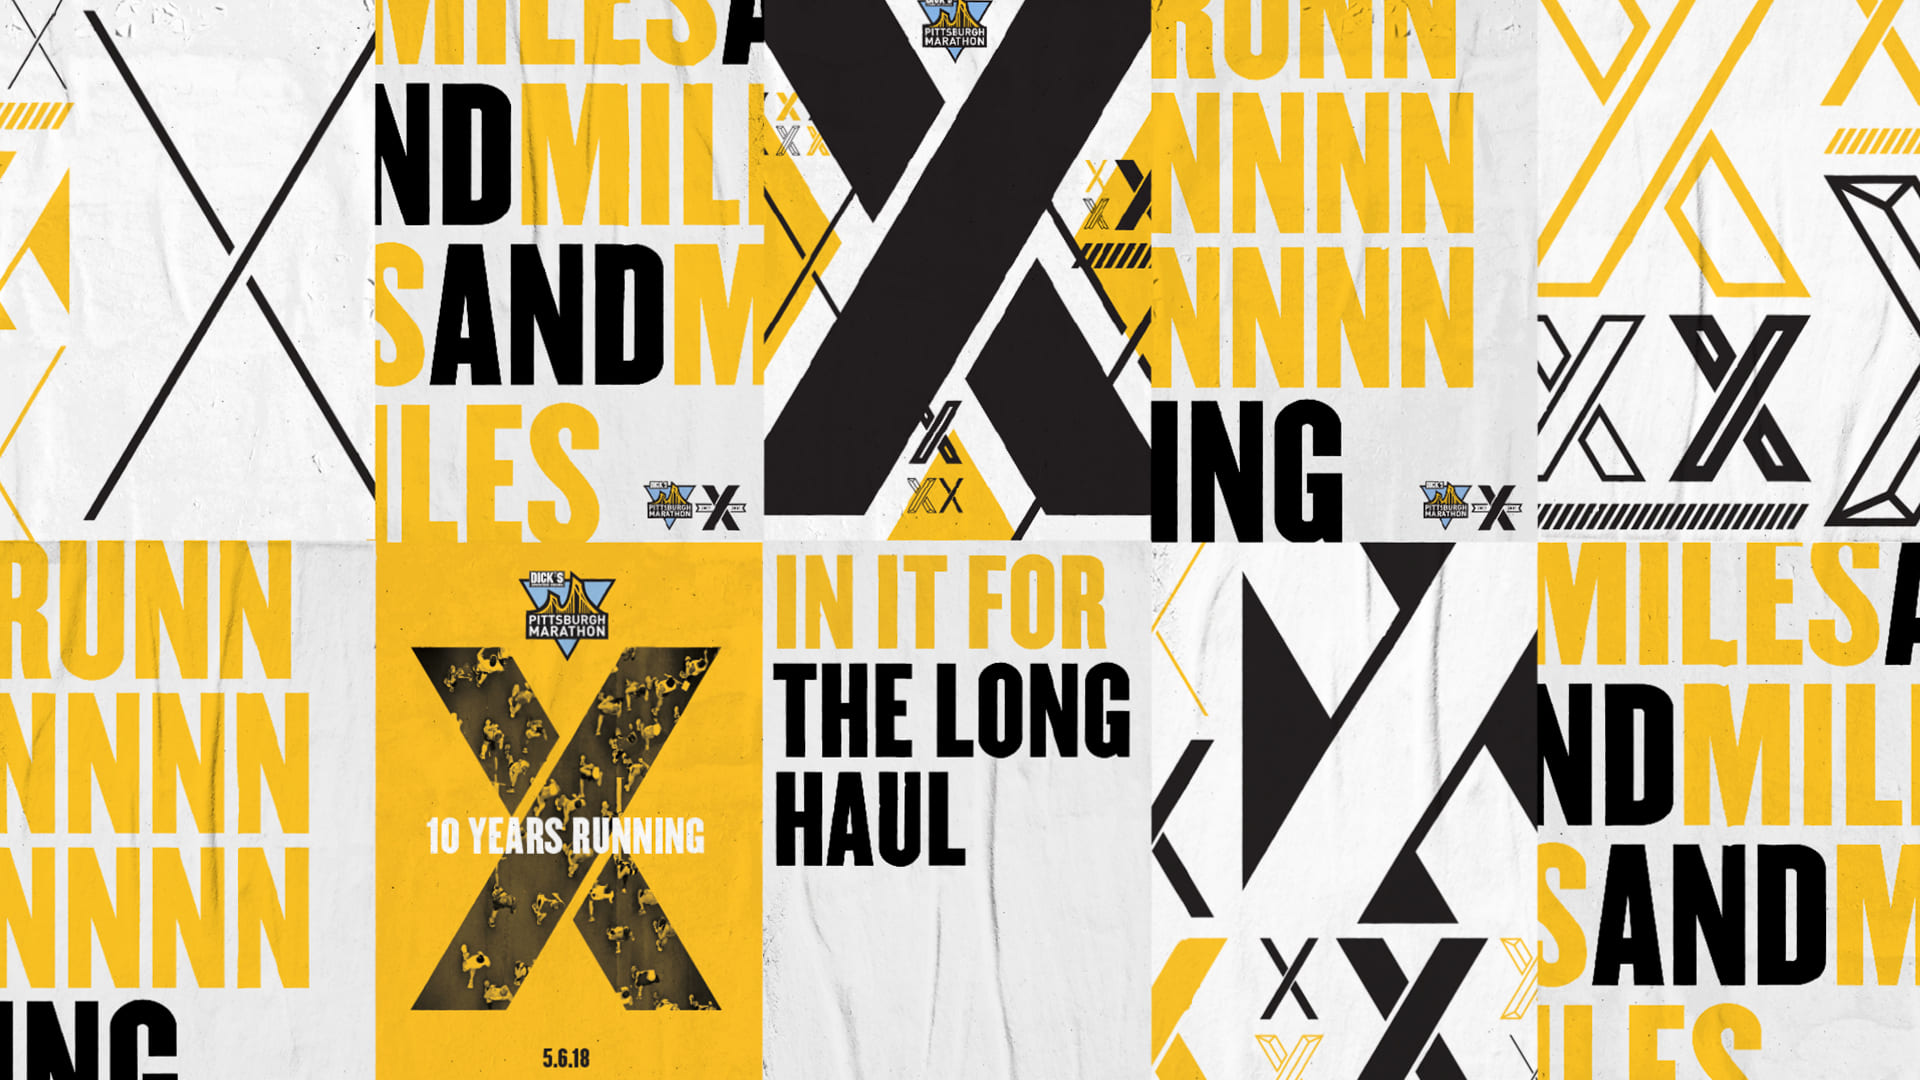 Wall To Wall Studios Designs Integrated Branding Campaign For Pittsburgh Marathon S 10th Anniversary Race Wall To Wall Studios,Simple Blouse Designs Front And Back Images